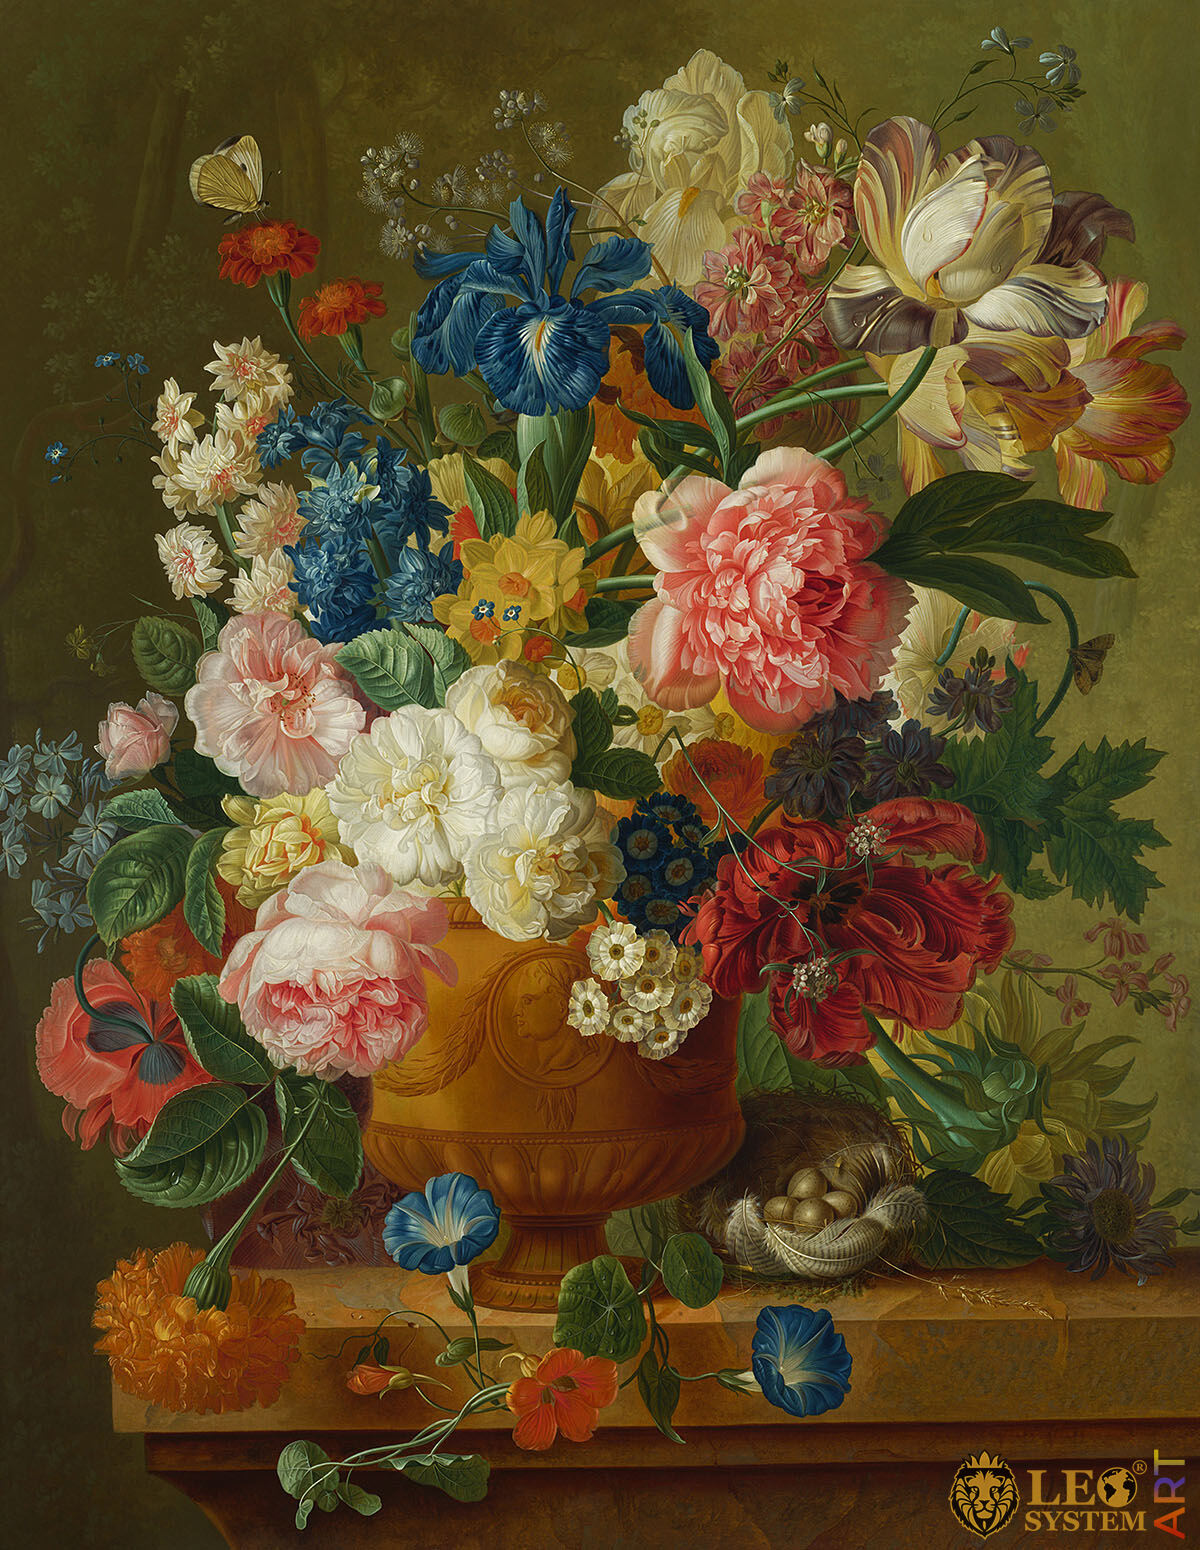 Oil painting on canvas with flowers in a vase